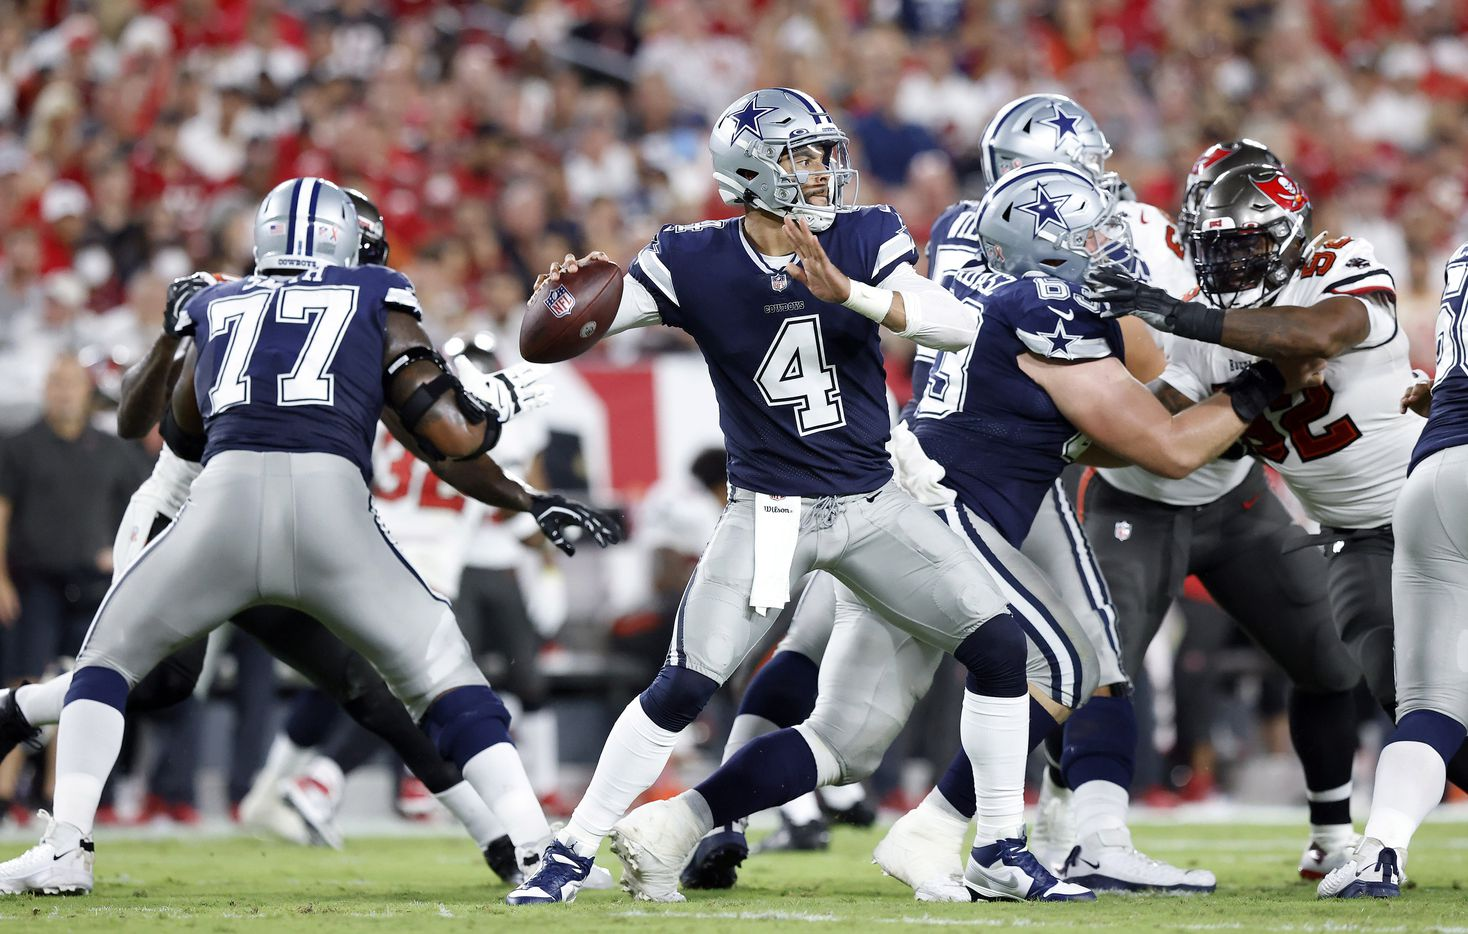 Dallas Cowboys quarterback Dak Prescott (4) throws from the pocket in the first quarter against the Tampa Bay Buccaneers at Raymond James Stadium in Tampa, Florida, Thursday, September 9, 2021. The Cowboys faced the Tampa Bay Buccaneers in the NFL season opener. (Tom Fox/The Dallas Morning News)